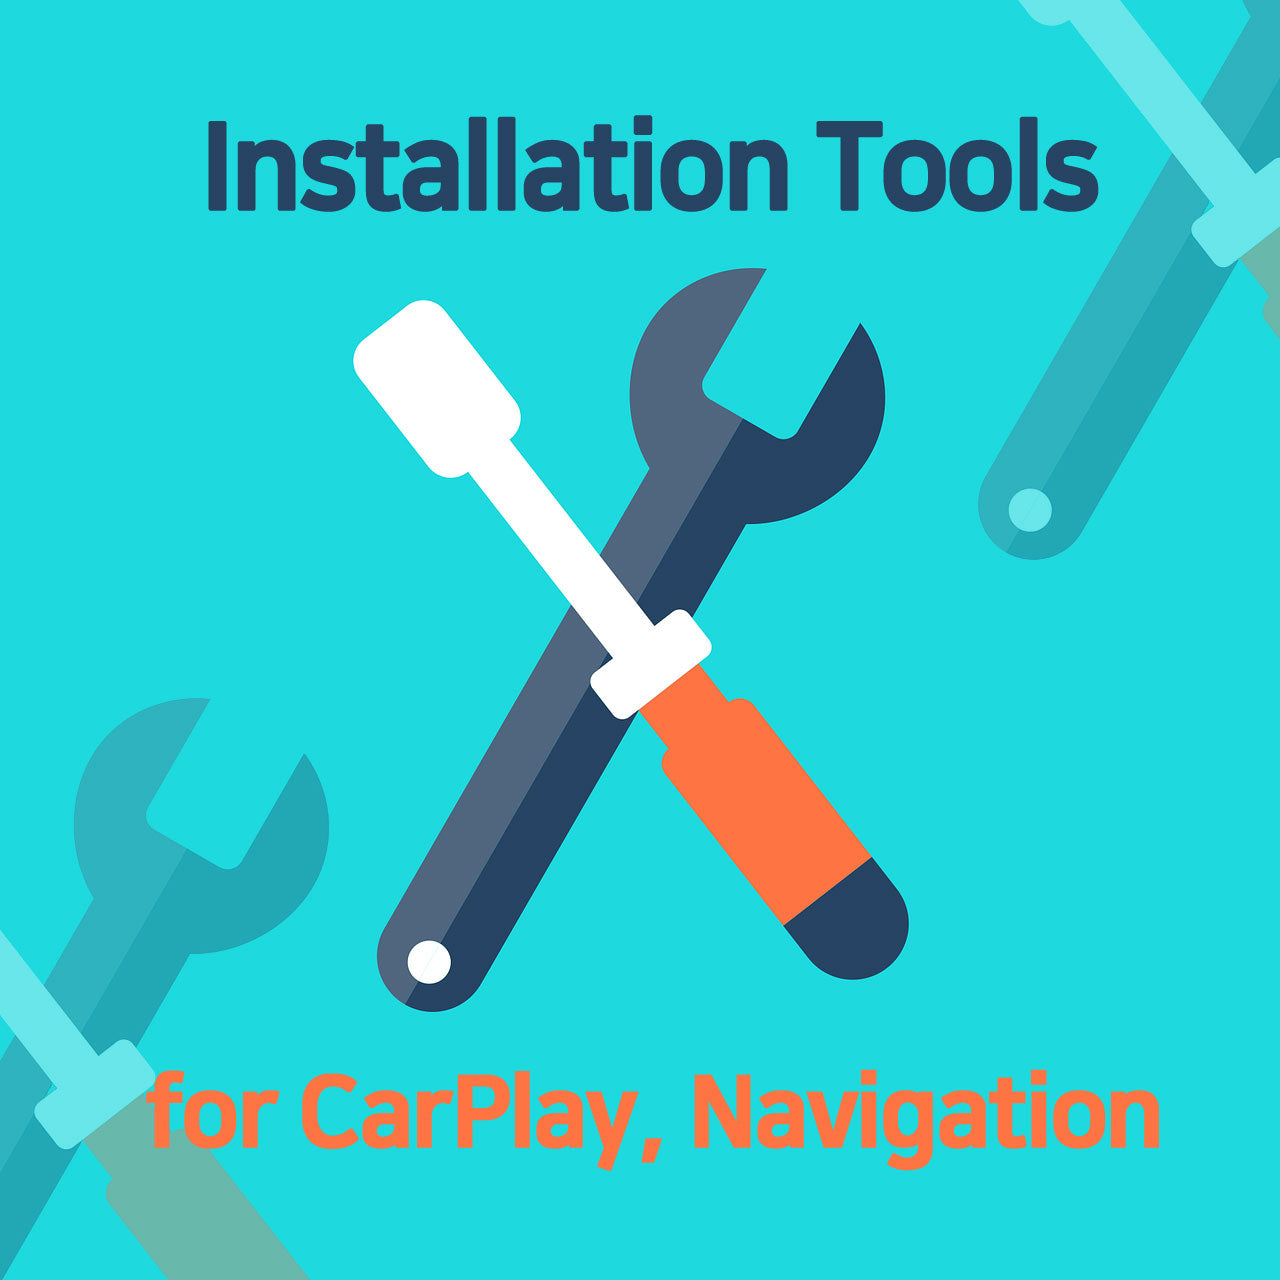 Installation Tools Kit for CarPlay & Navigation